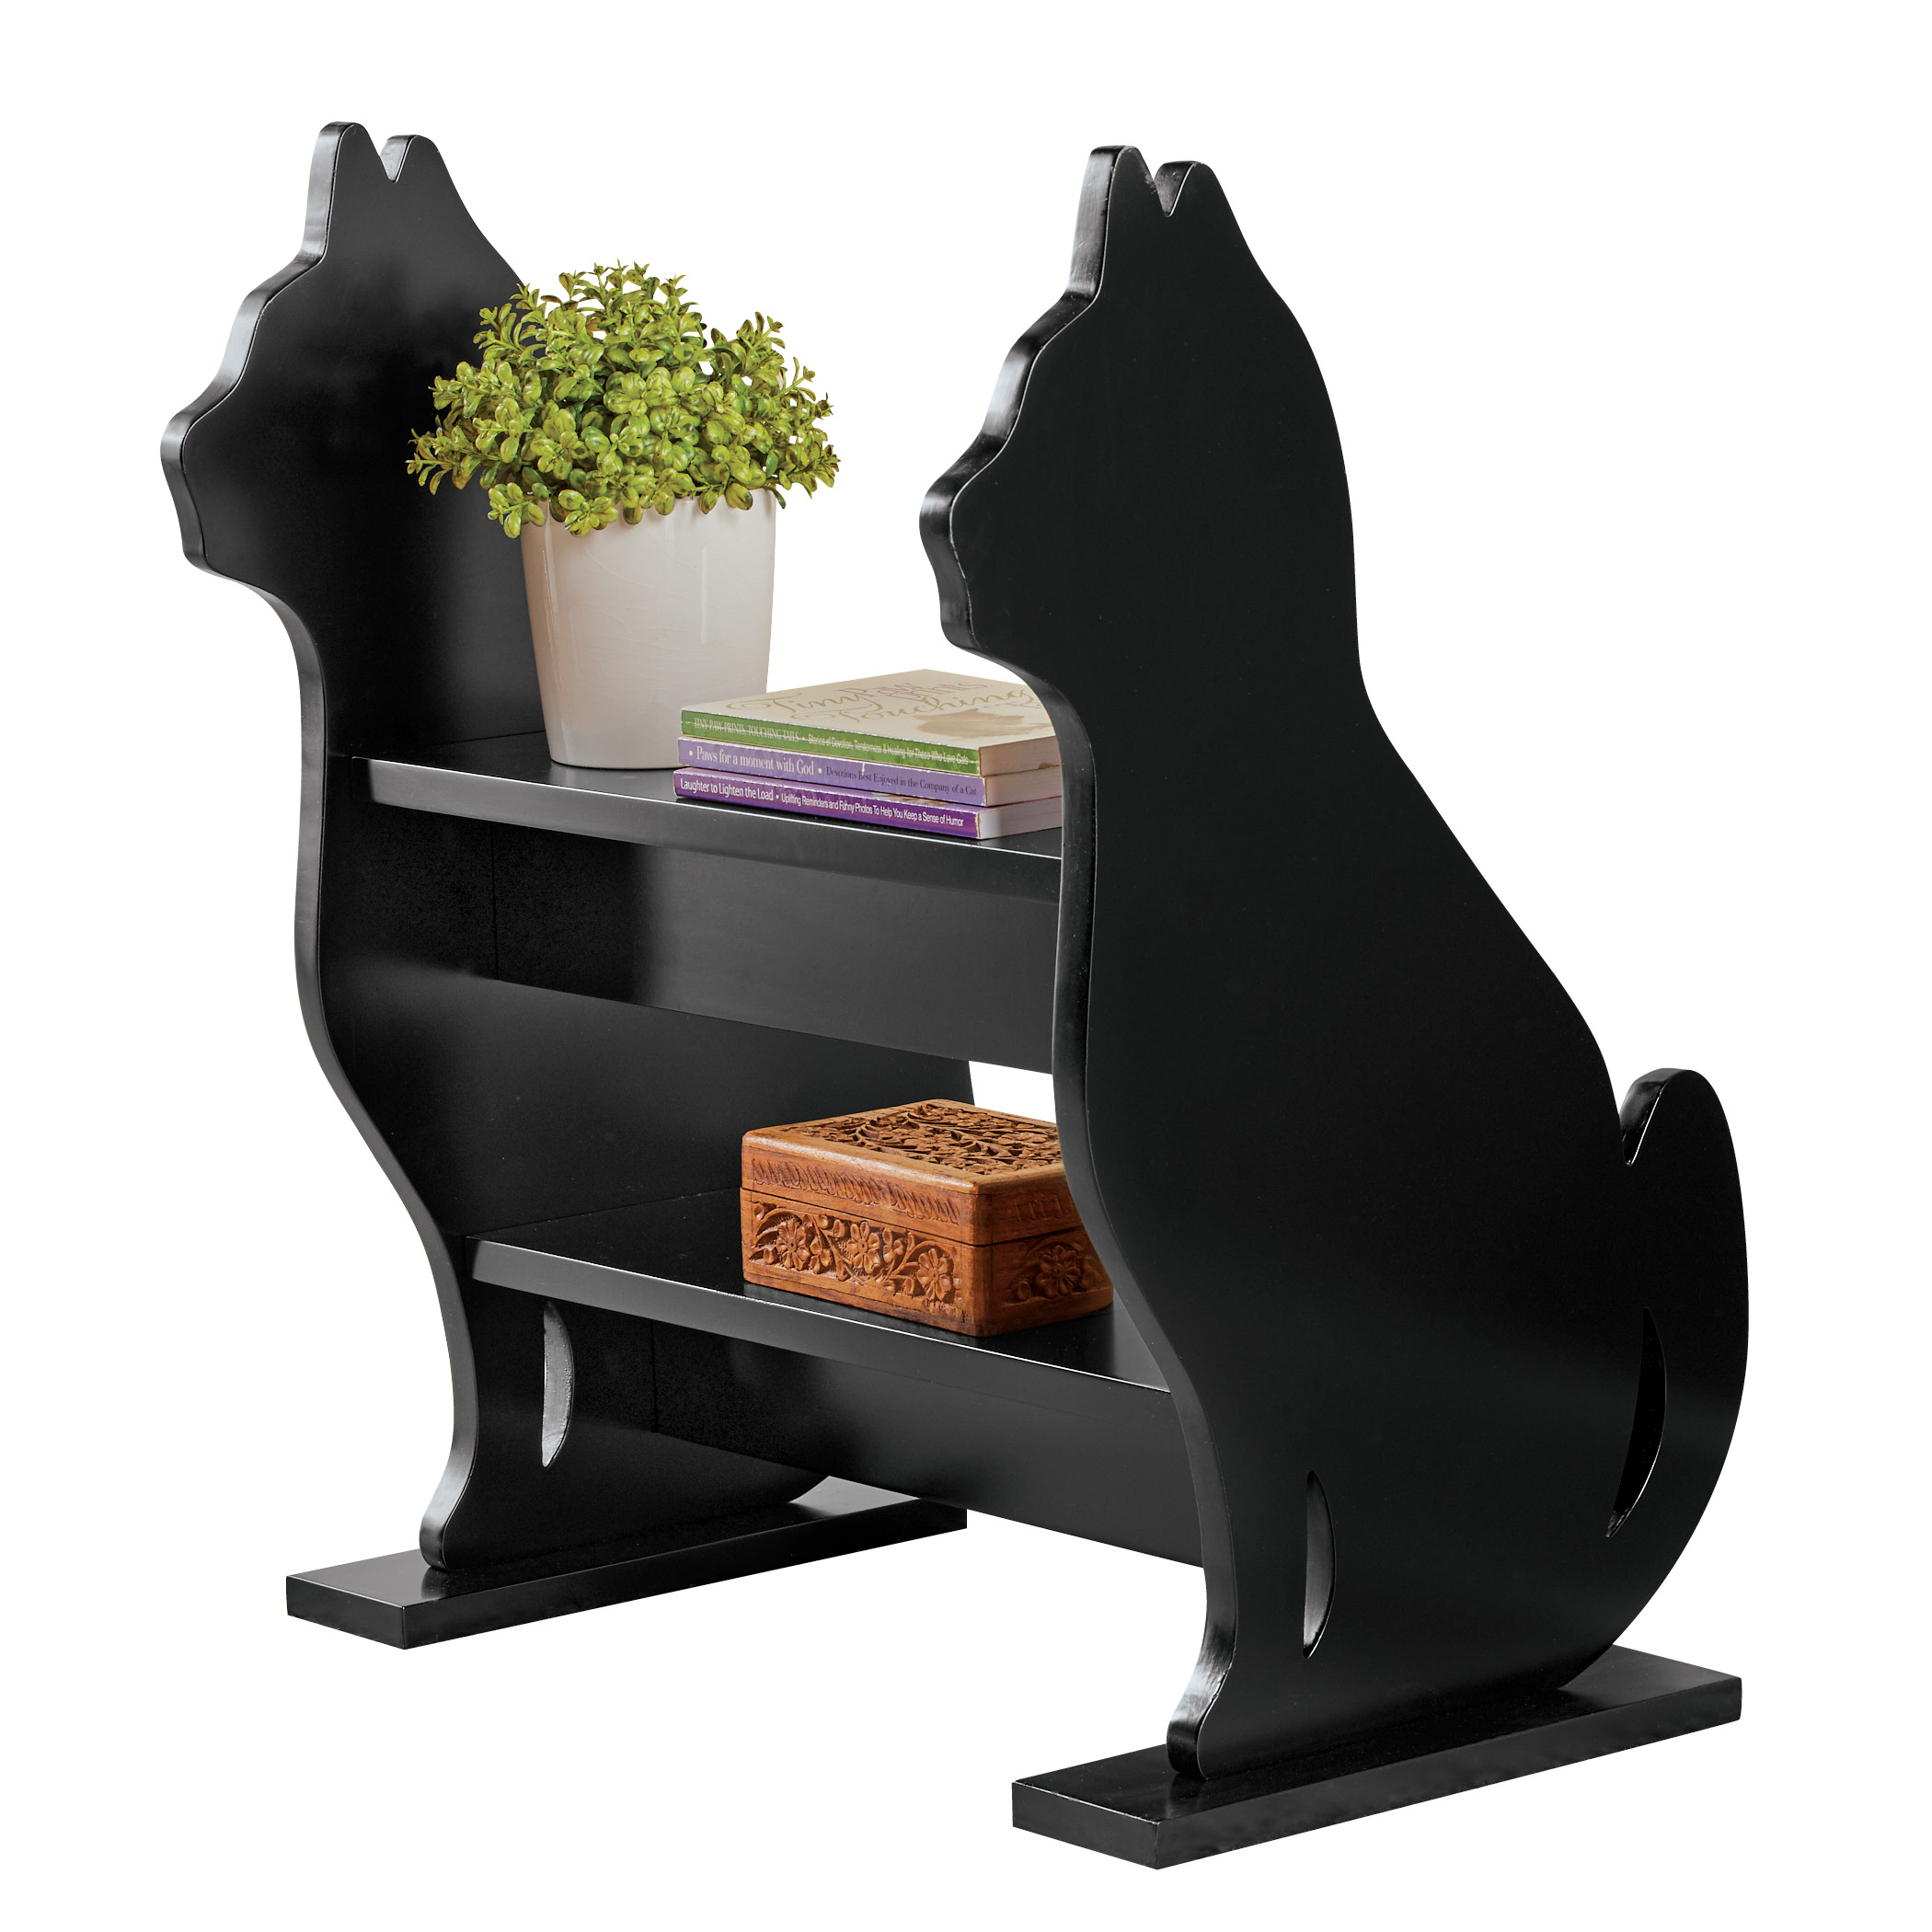 Cat Silhouette Entryway Storage Bench Use For Entry Ways Bedroom Or Family Room 2 Shelves For Books Knickknacks Etc 20 75 X 16 X 24 Walmart Com Walmart Com